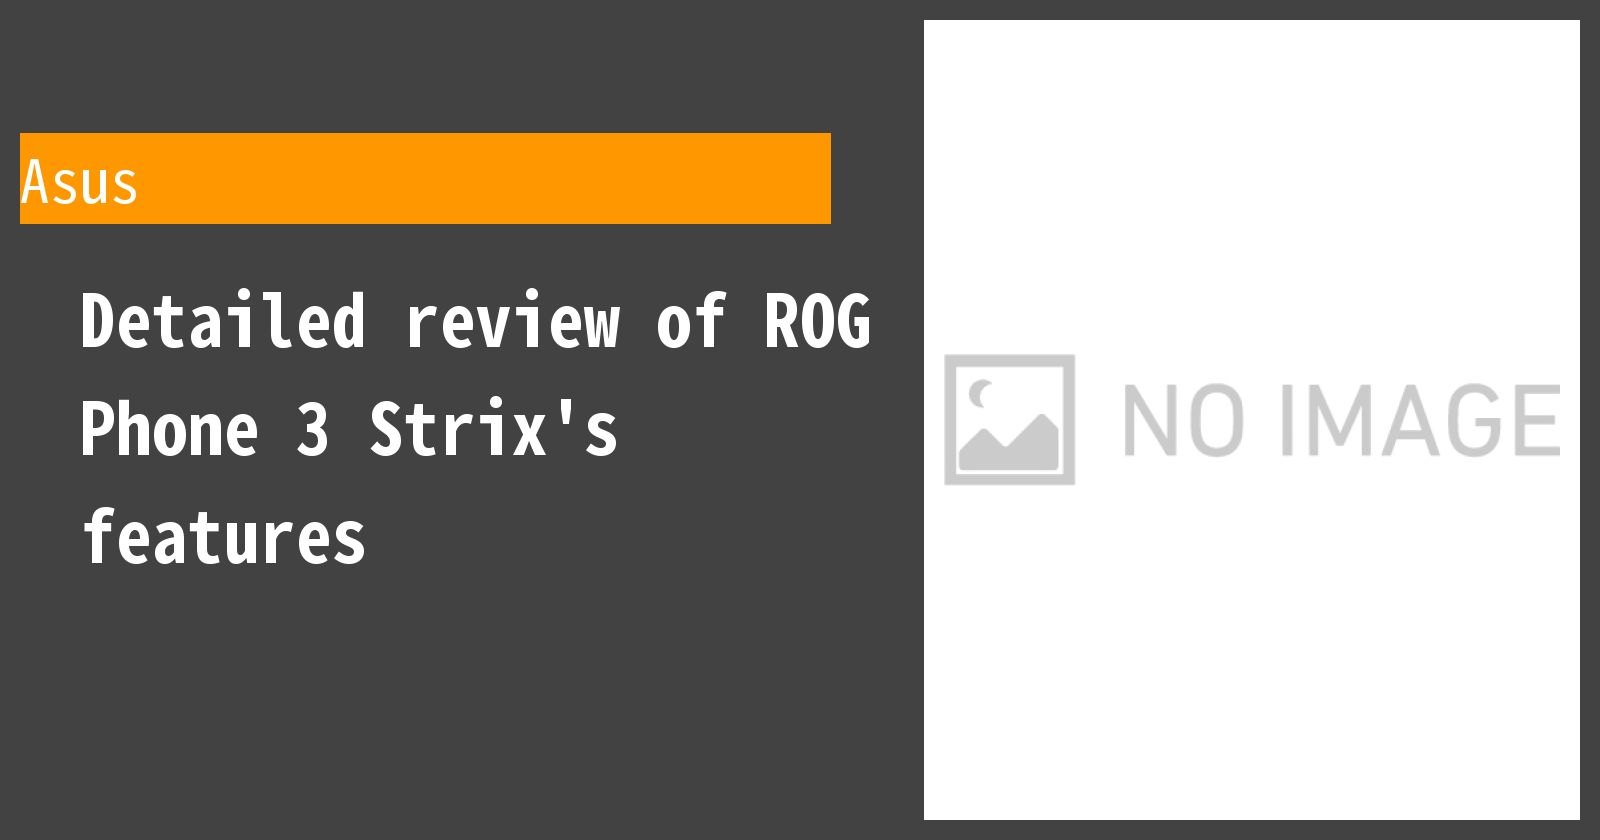 Detailed review of ROG Phone 3 Strix's features